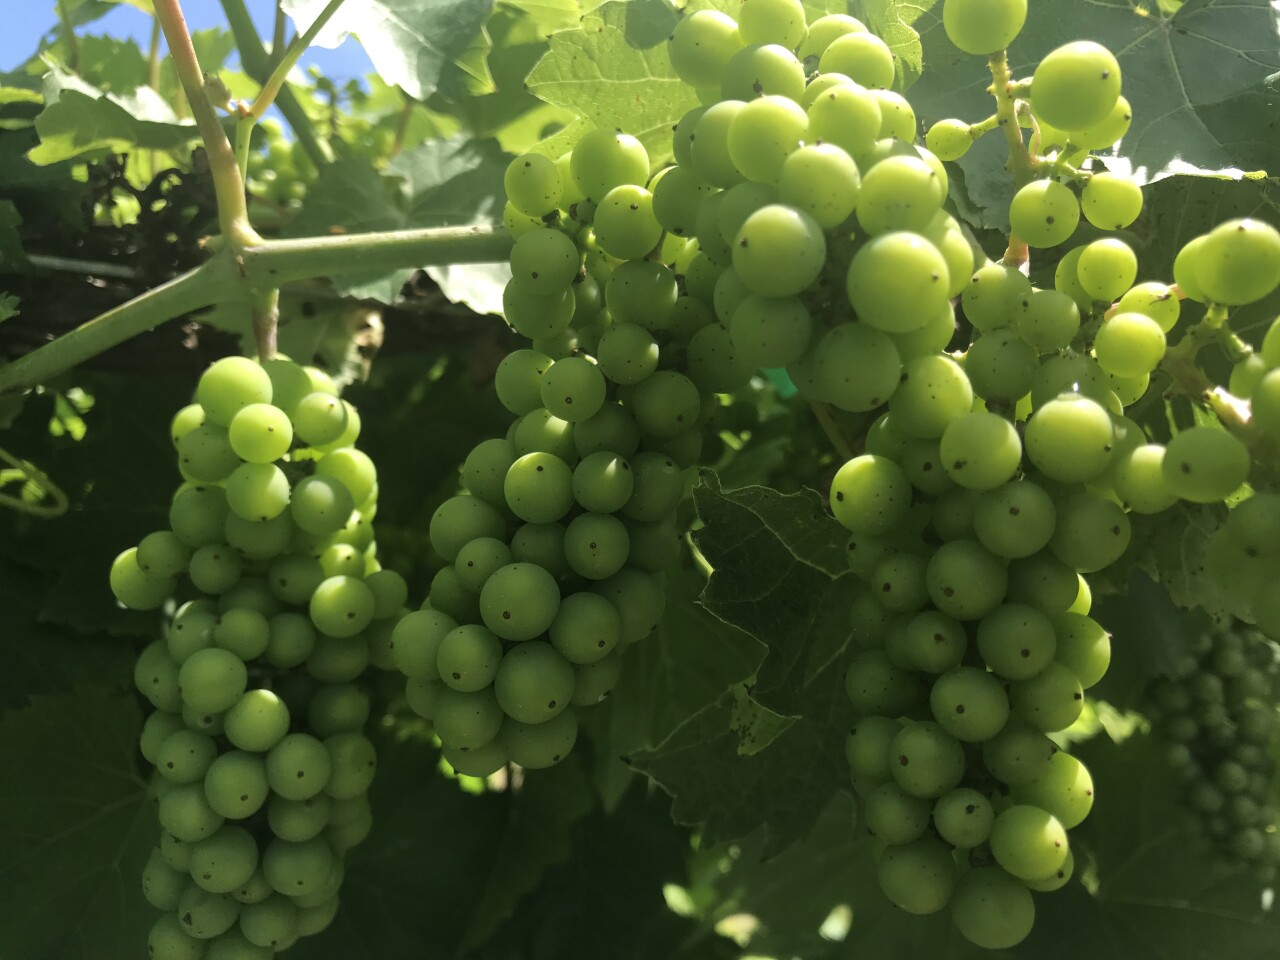 These hybrid grapes are bred to survive cold winters.